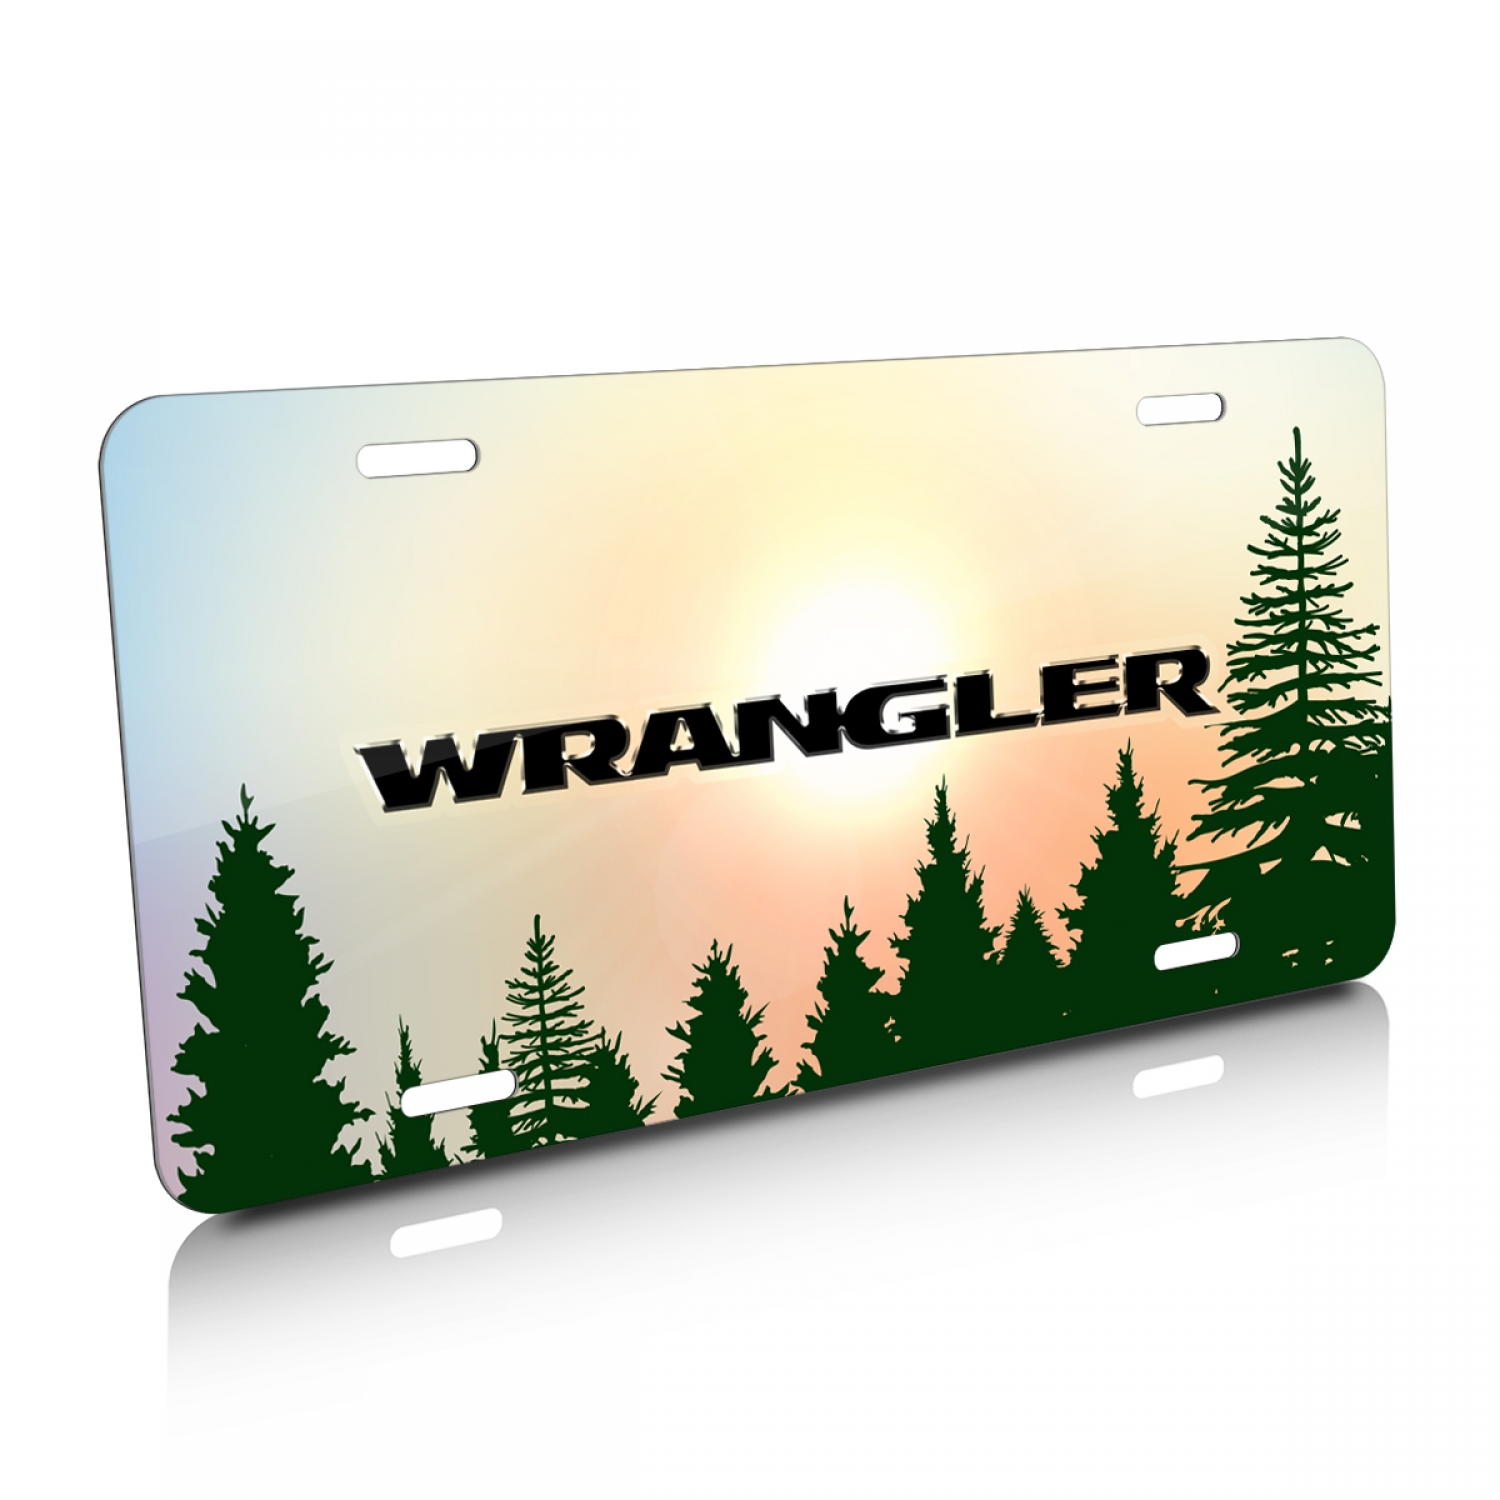 Jeep Wrangler Green Forrest Sillhouette Graphic Aluminum License Plate